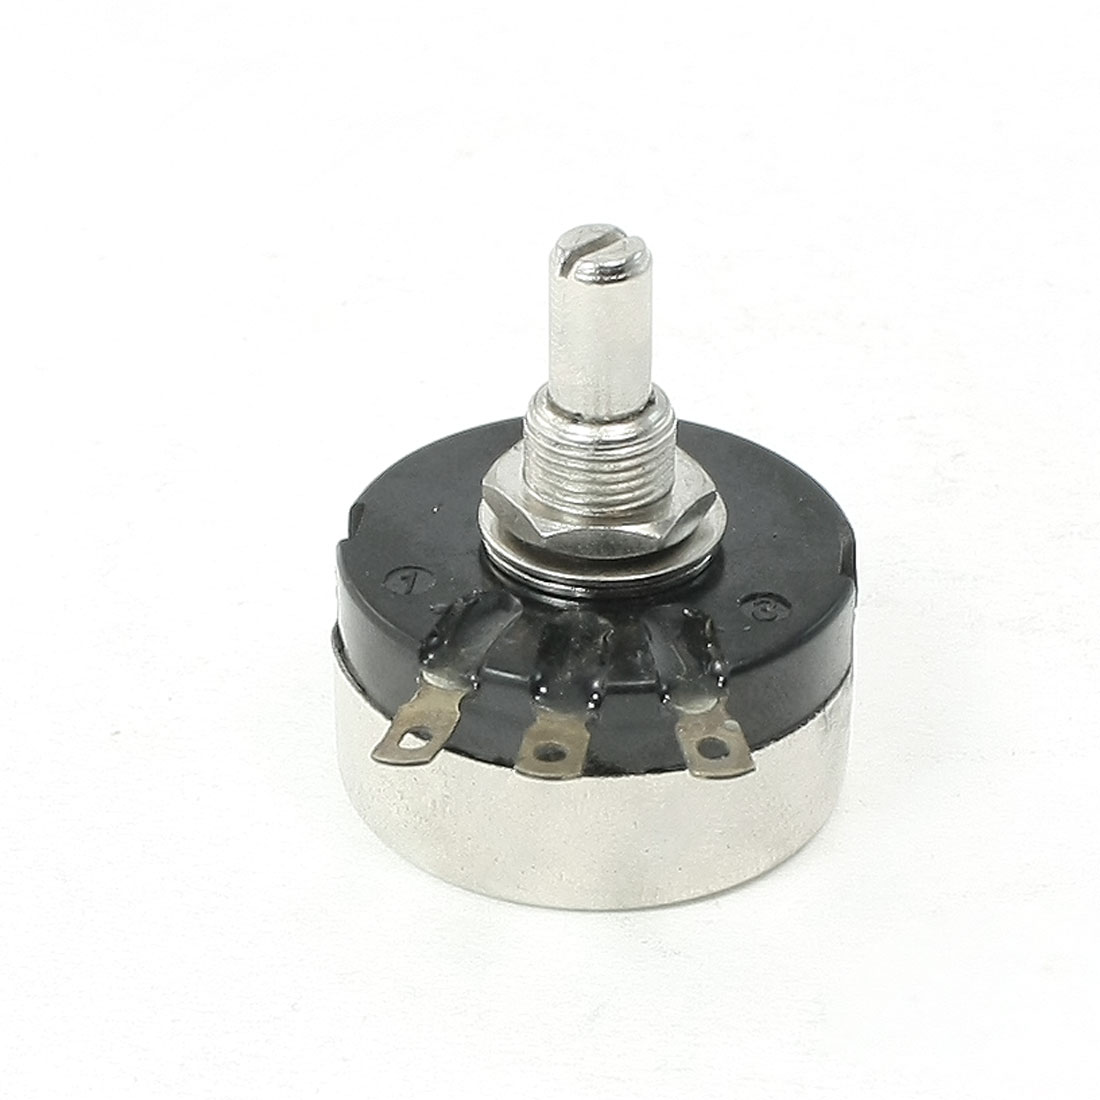 RV30YN20S/B502 5K ohm 6mm Round Shaft Carbon Film Rotary Taper Potentiometer